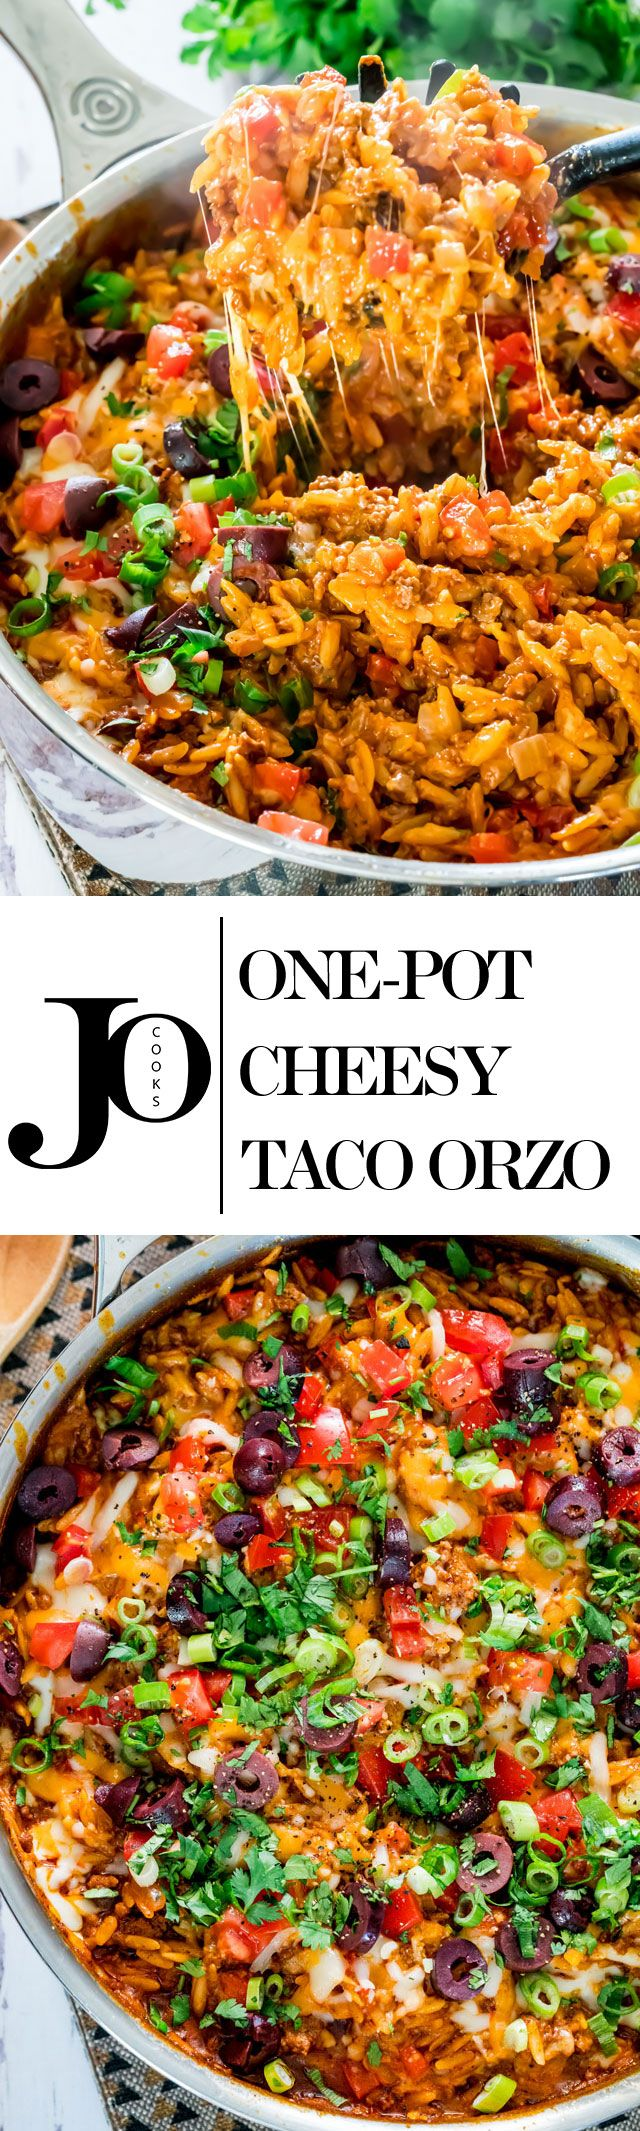 One Pot Cheesy Taco Orzo – picture the yumminess with this quick and delicious pot of perfect comfort food, ready in 30 minutes!